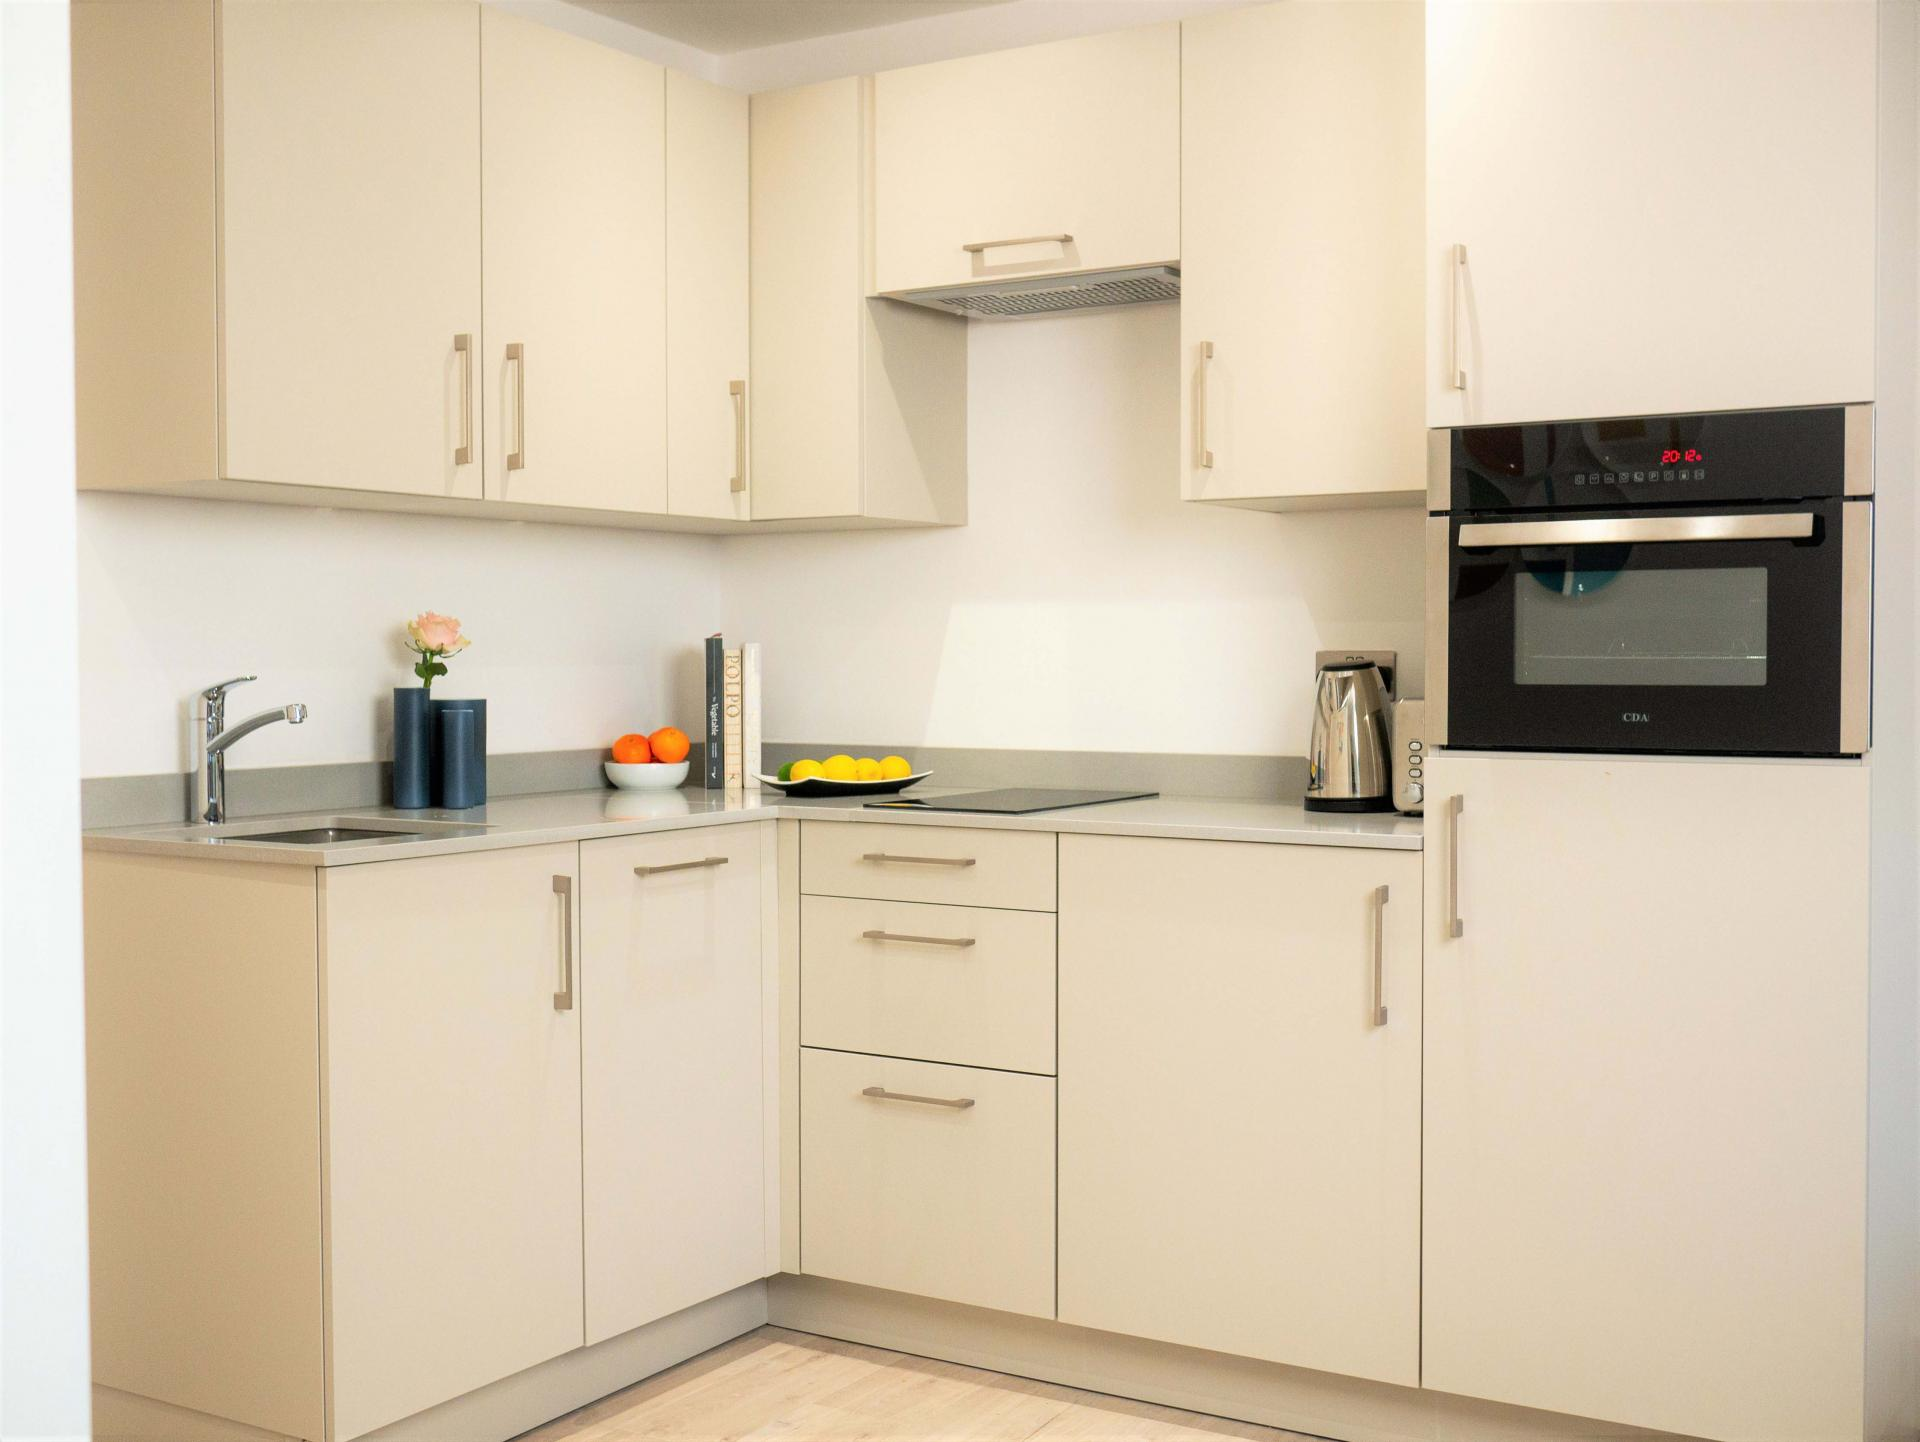 Kitchen at Q Square Aparthotel, Centre, Brighton - Citybase Apartments